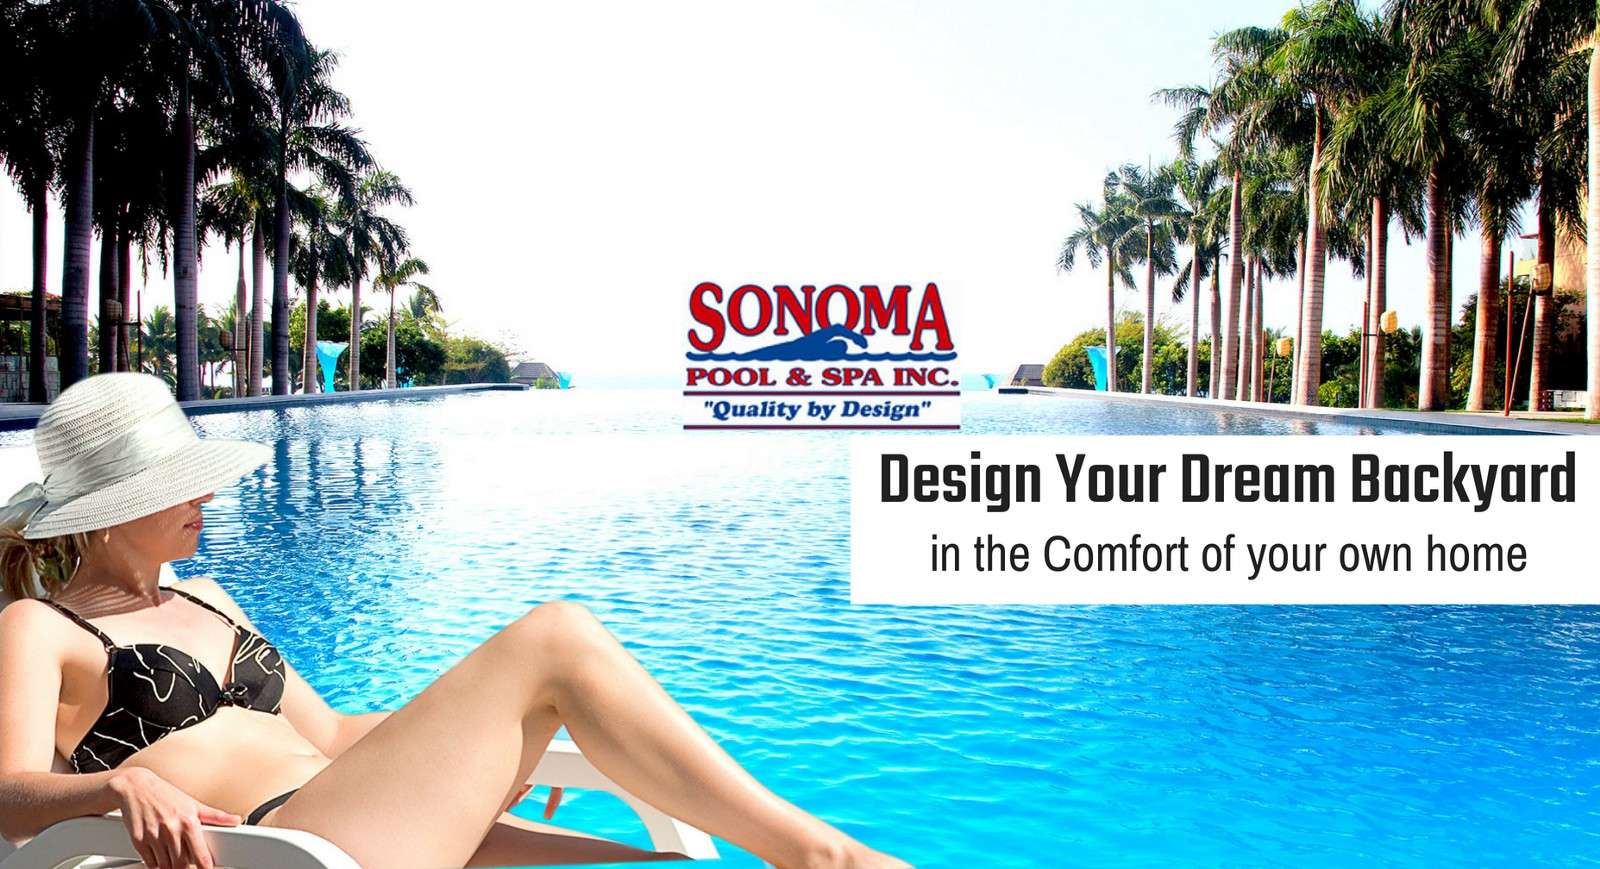 Design Your Own Pool